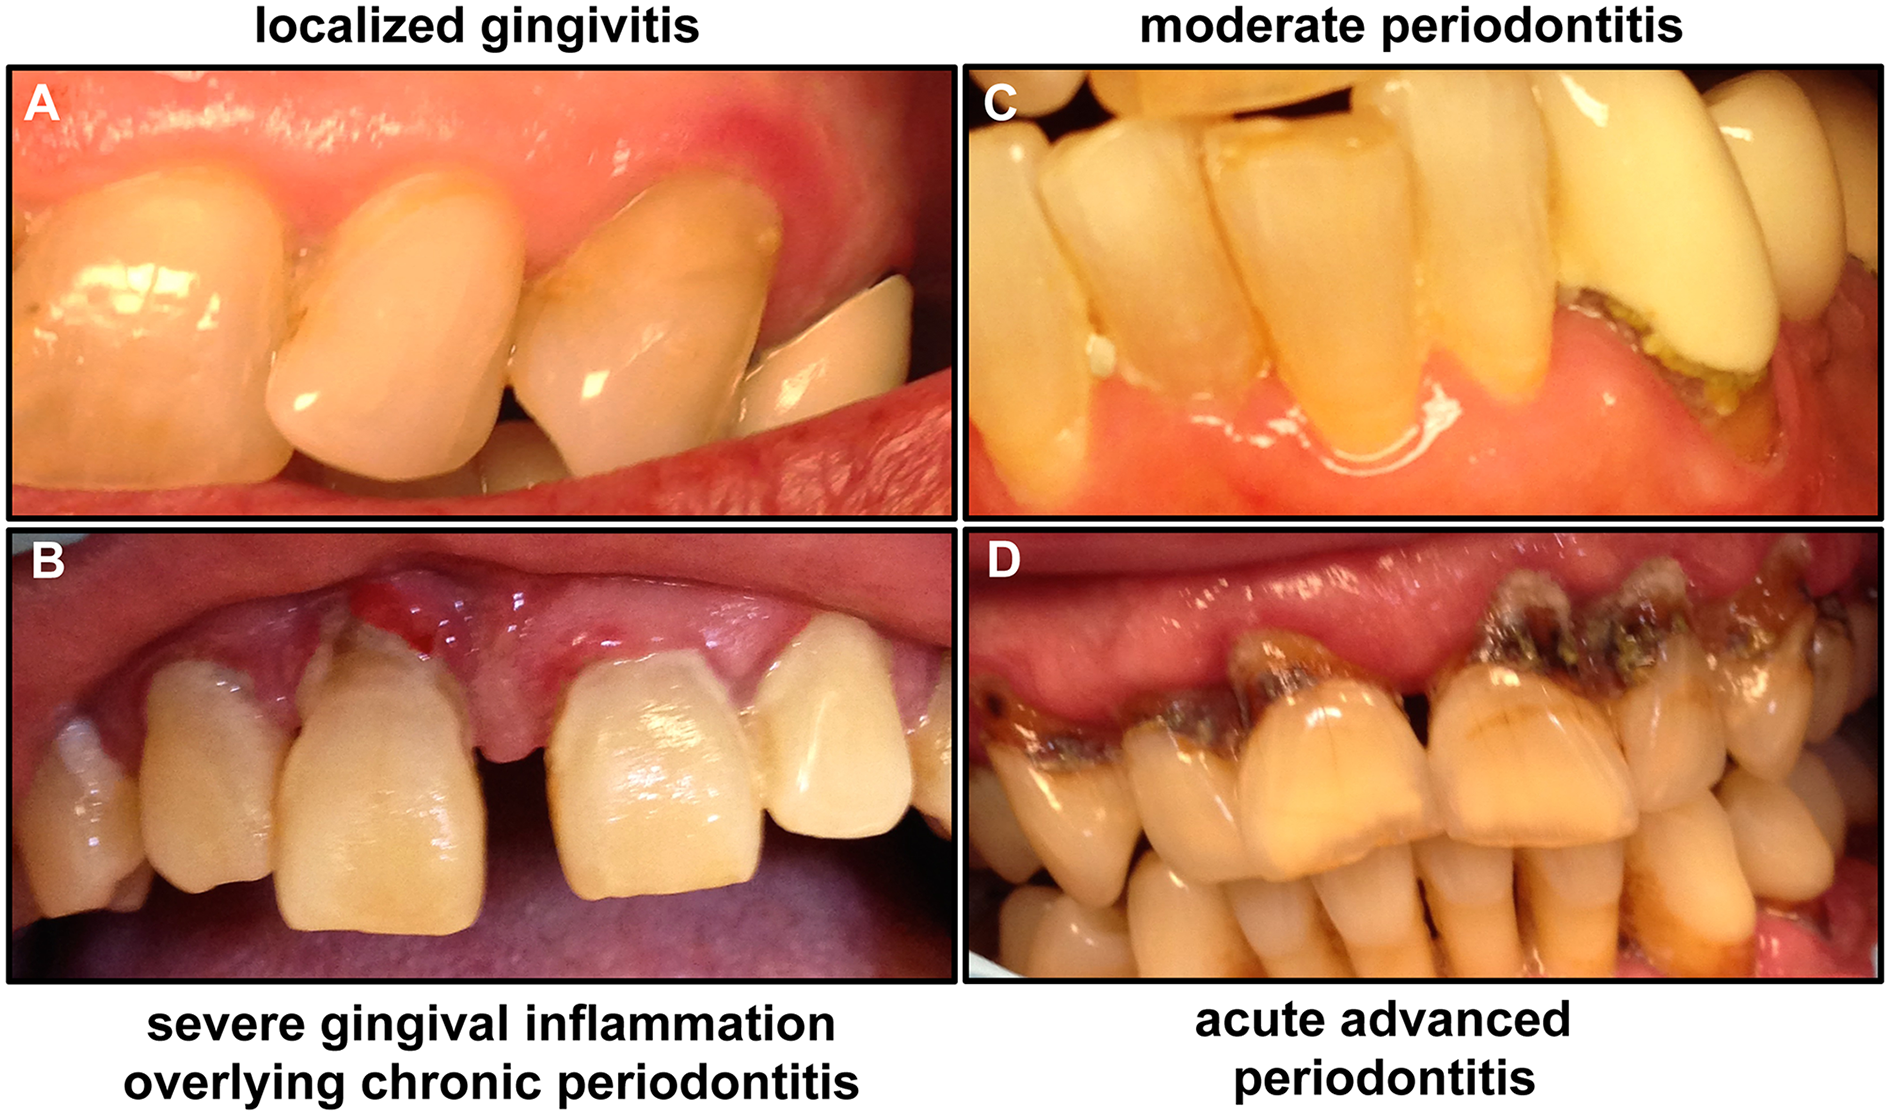 Images of patients demonstrating the clinical progression of periodontal disease from gingivitis to advanced periodontitis.